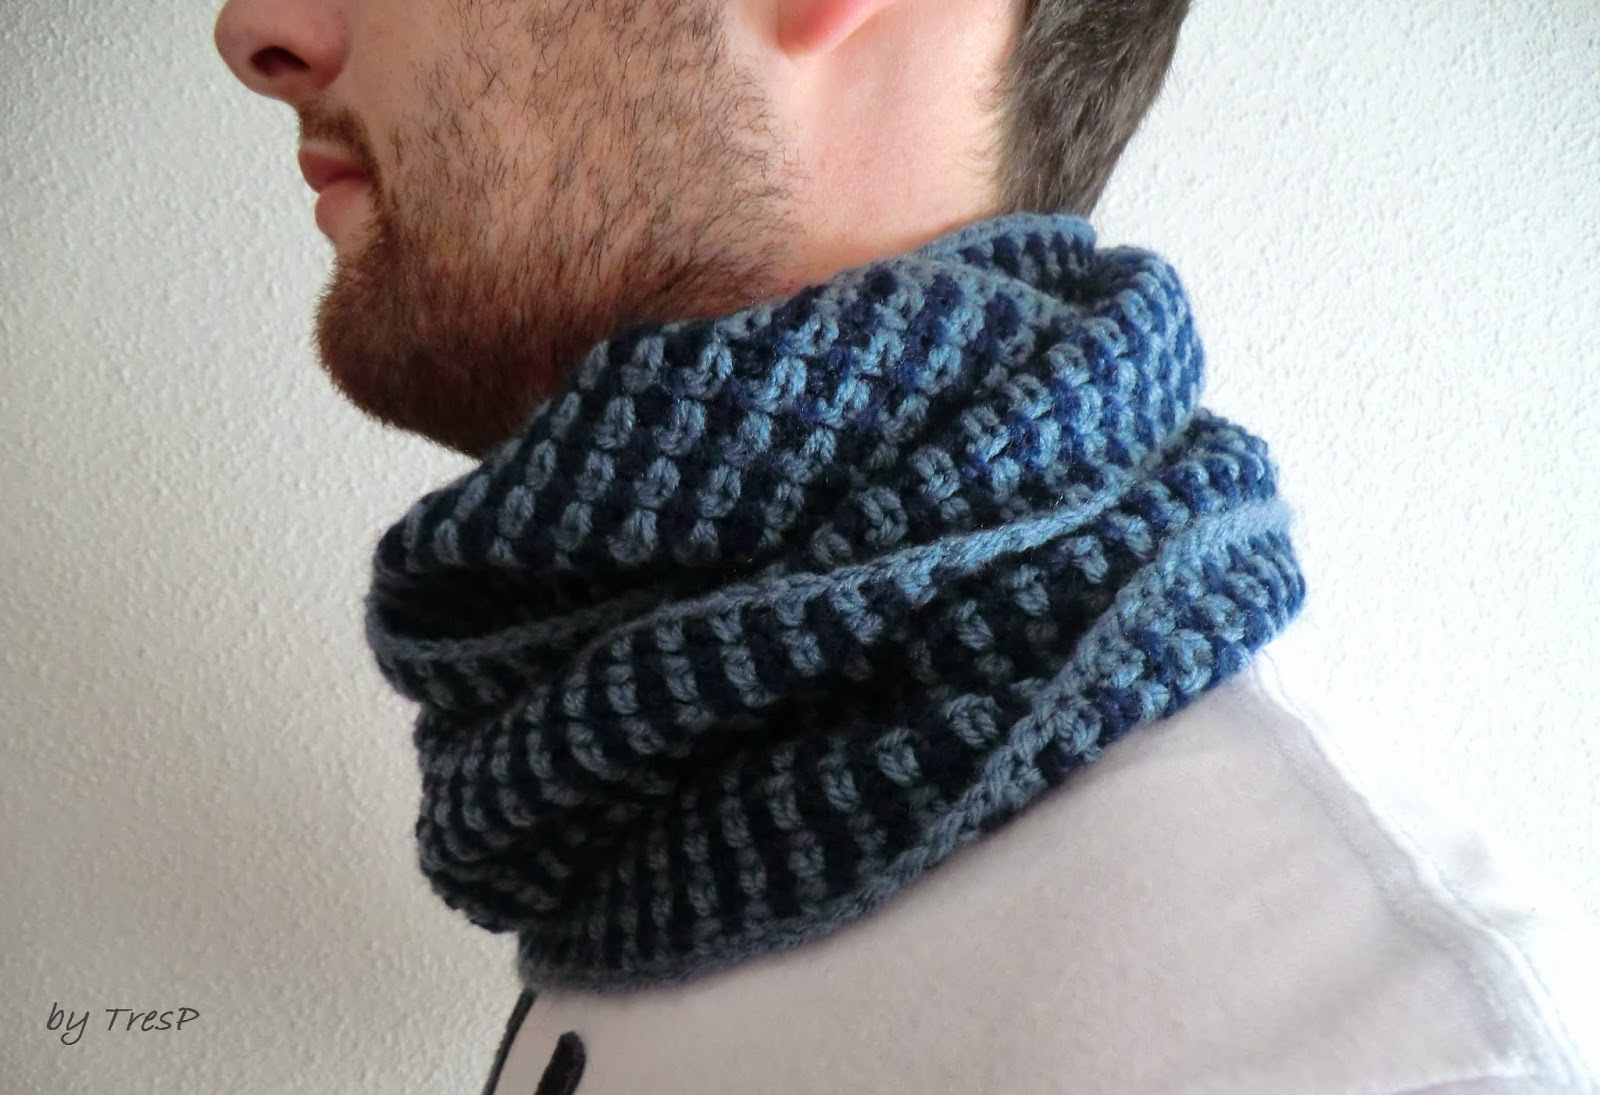 TresP craft blog: CUELLO/BUFANDA MASCULINO DE CROCHET/GANCHILLO CON ...